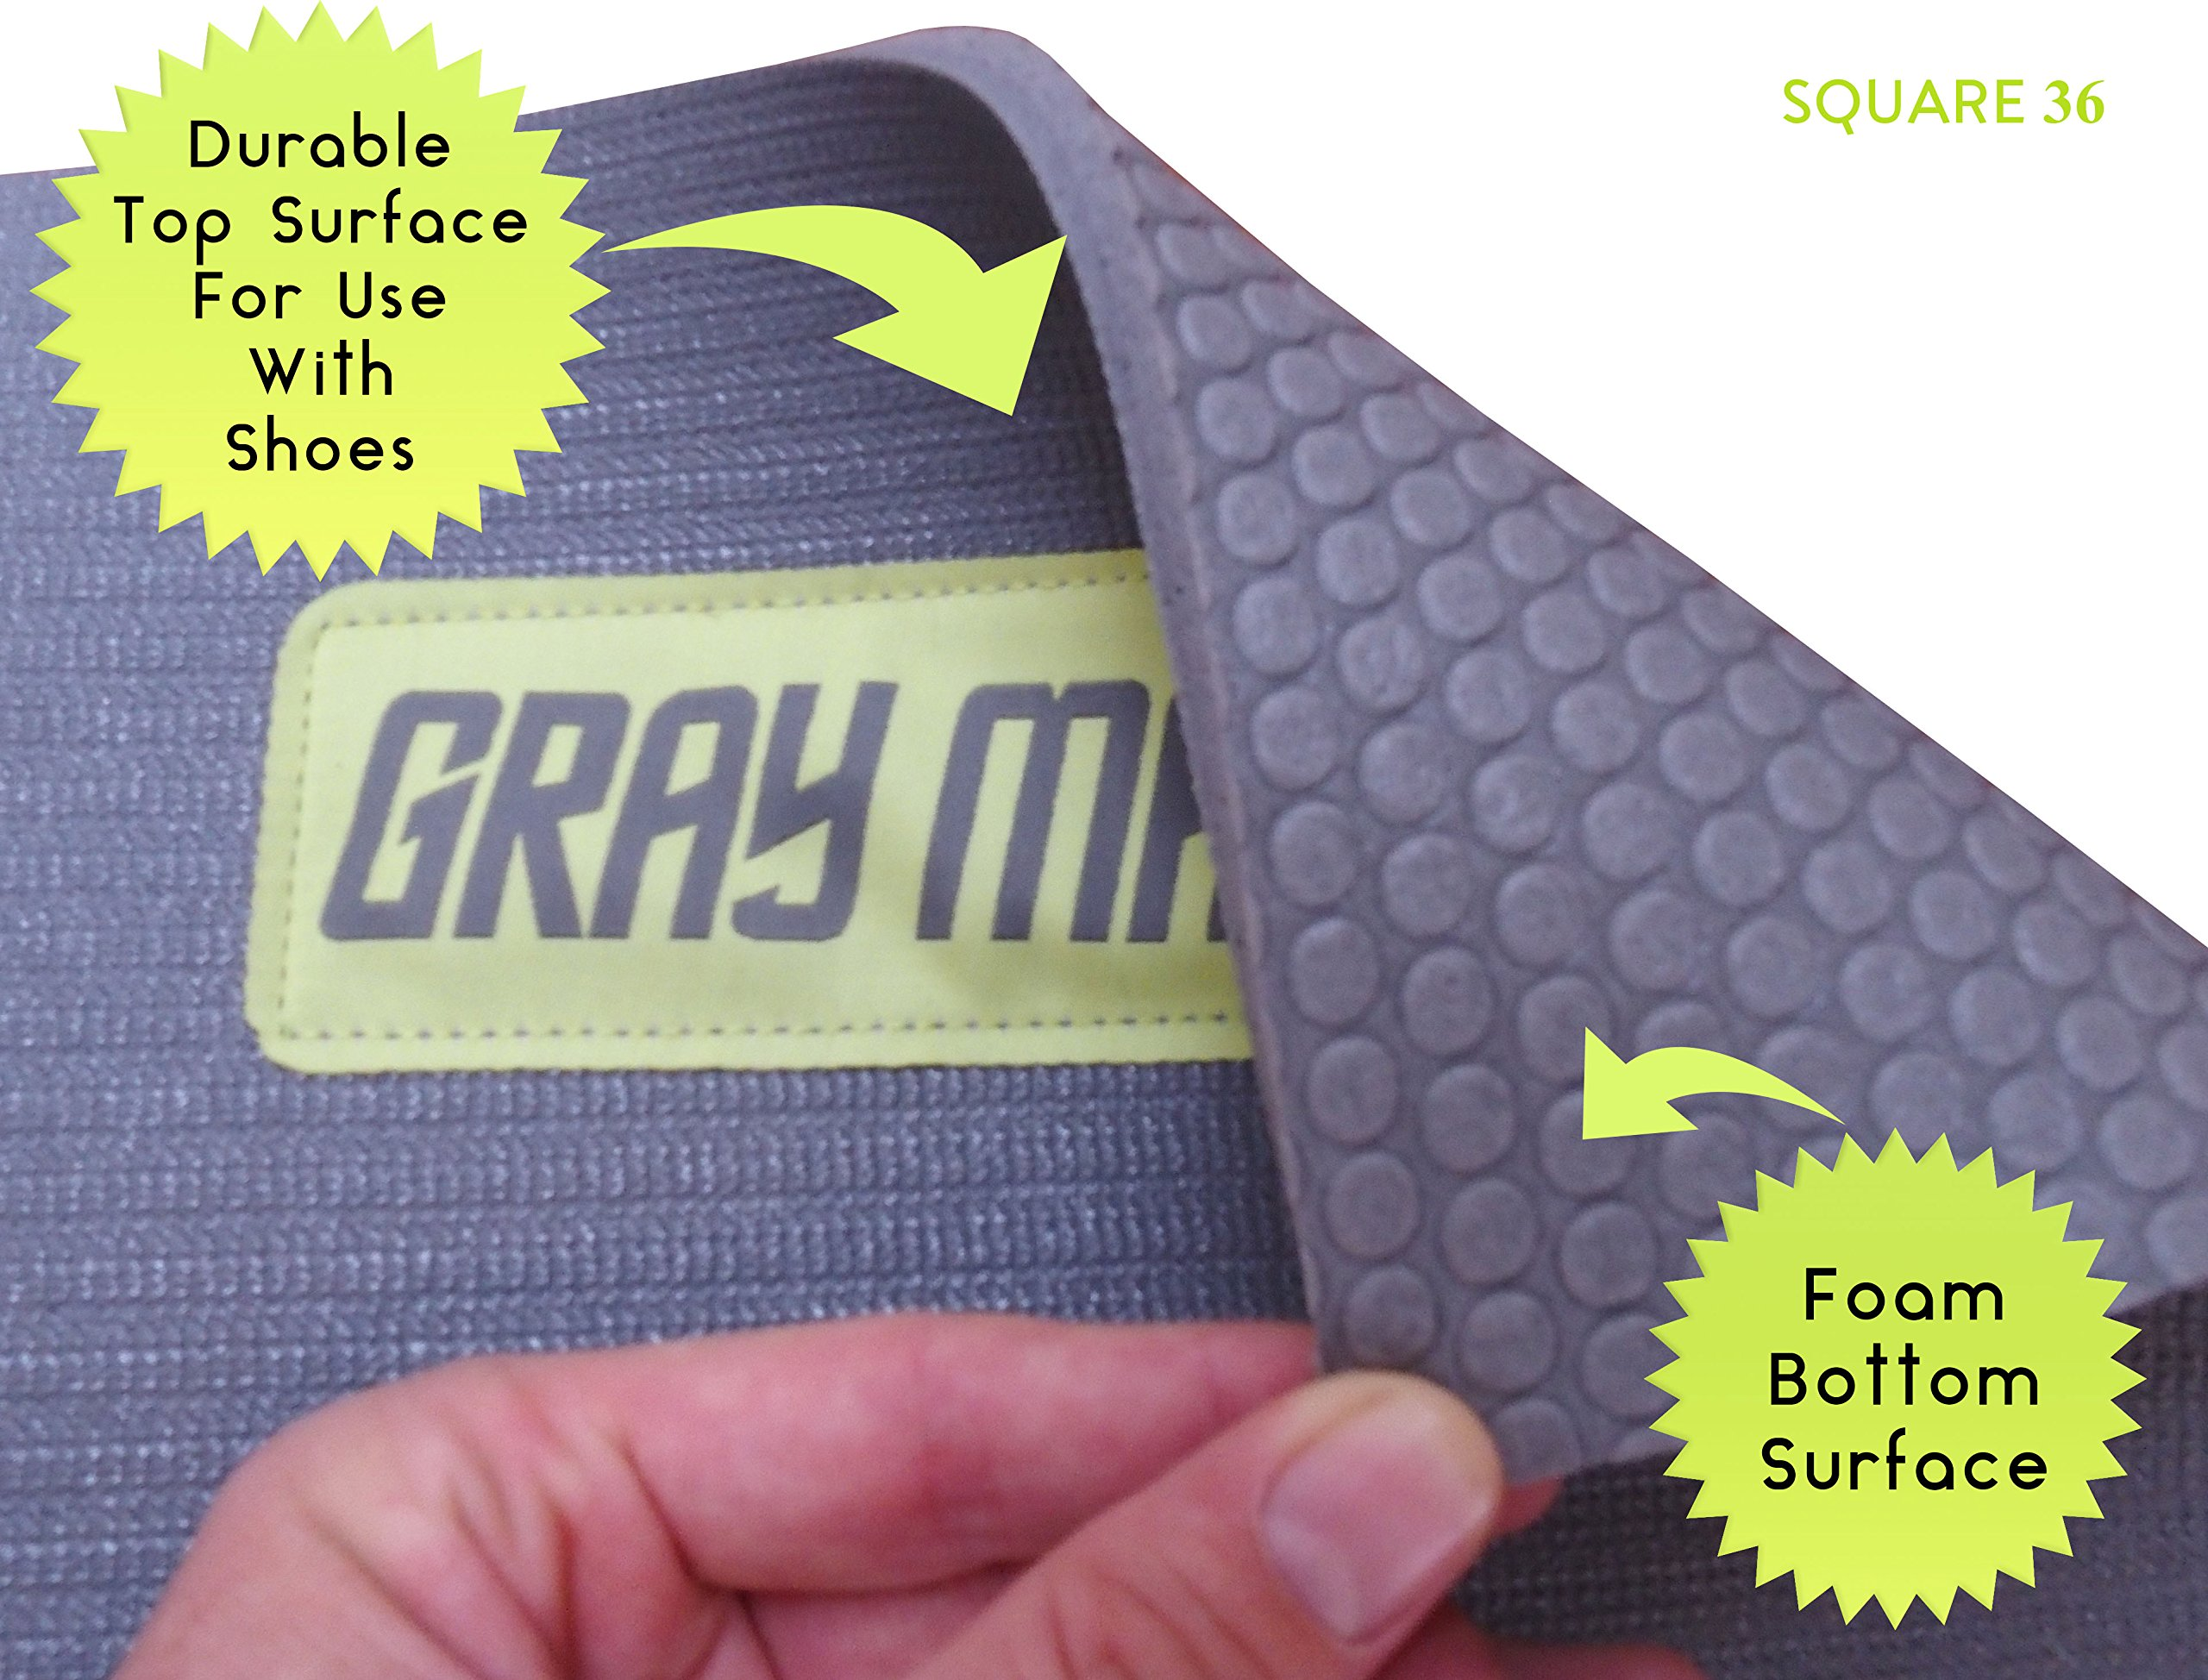 Large Exercise Mat For Cardio Workouts 72'' Long x 60'' Wide x 7mm Thick (6' x 5' x 7mm). For Home-Based Workouts With or Without SHOES. Comes With a Storage Bag & Storage Straps. by Square36 (Image #4)